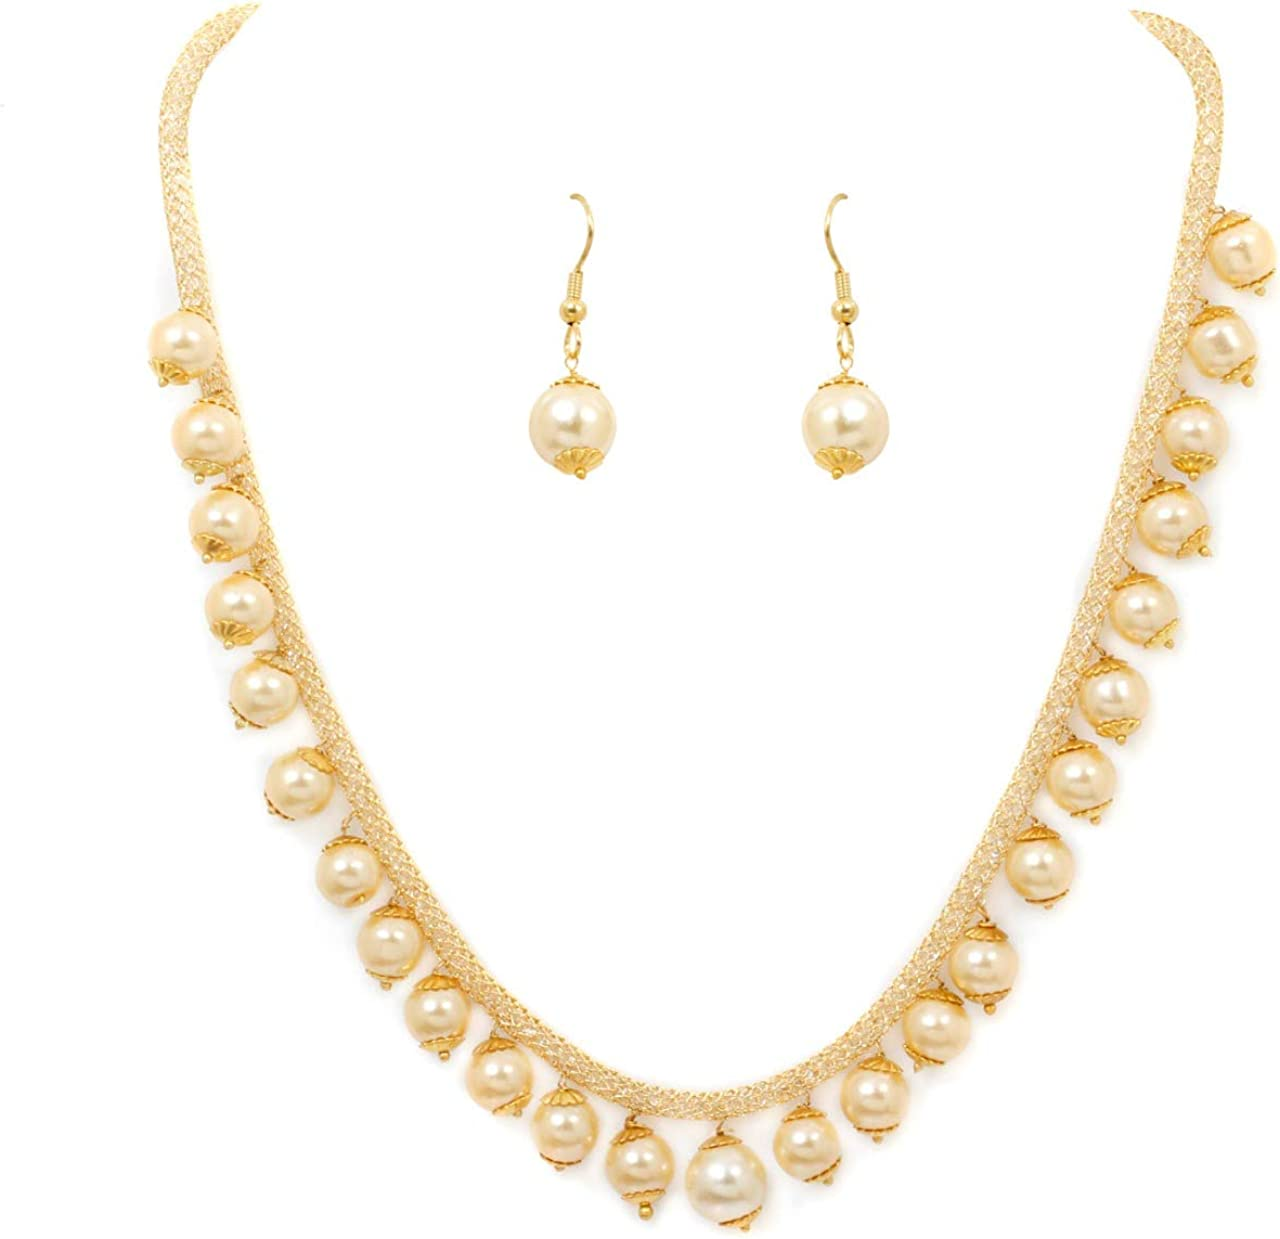 SANARA Indian Traditional Bollywood Pearl Drop Vintage Necklace Earring Set Women & Girl's Party Wear Fashionable Jewelry